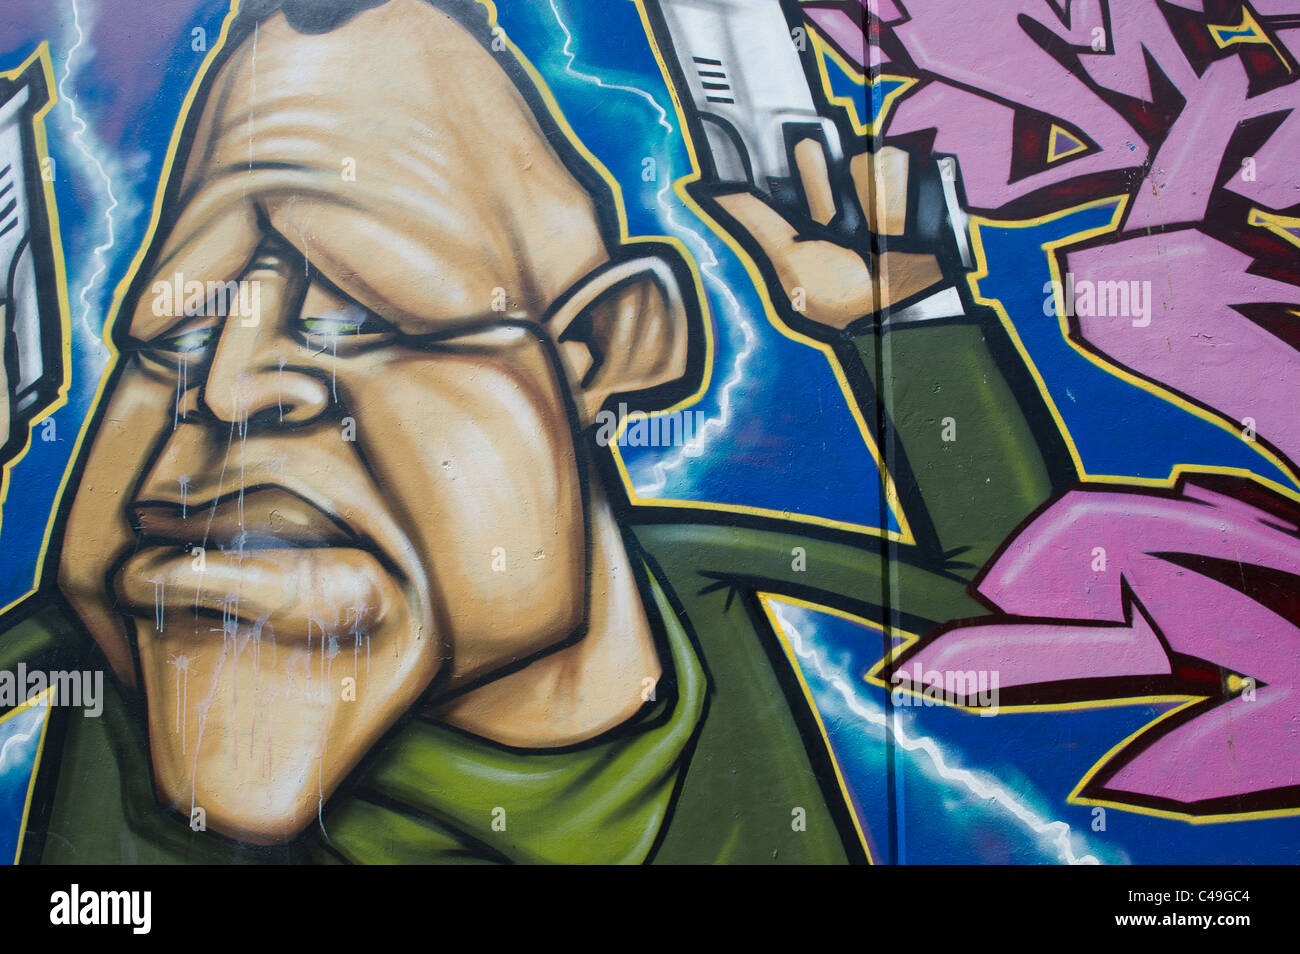 A wall of graffiti art at a skate park in leigh on sea essex uk a wall of graffiti art at a skate park in leigh on sea essex uk artists unknown altavistaventures Image collections